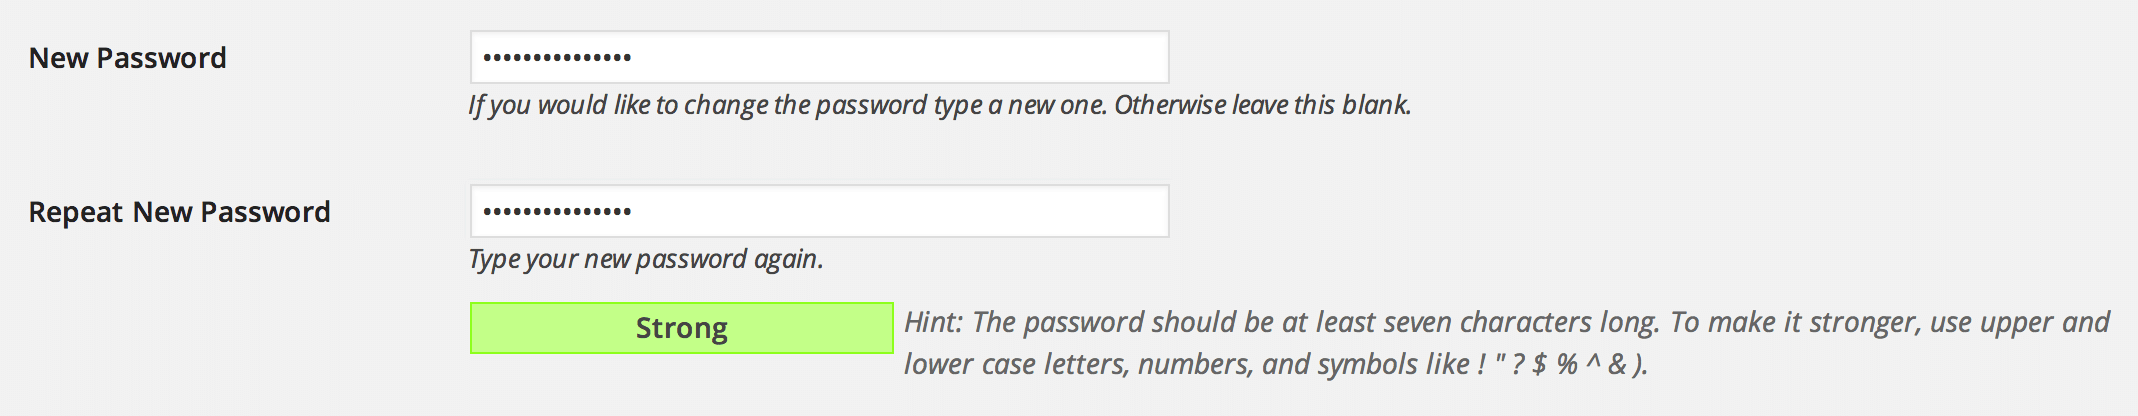 User Profile password